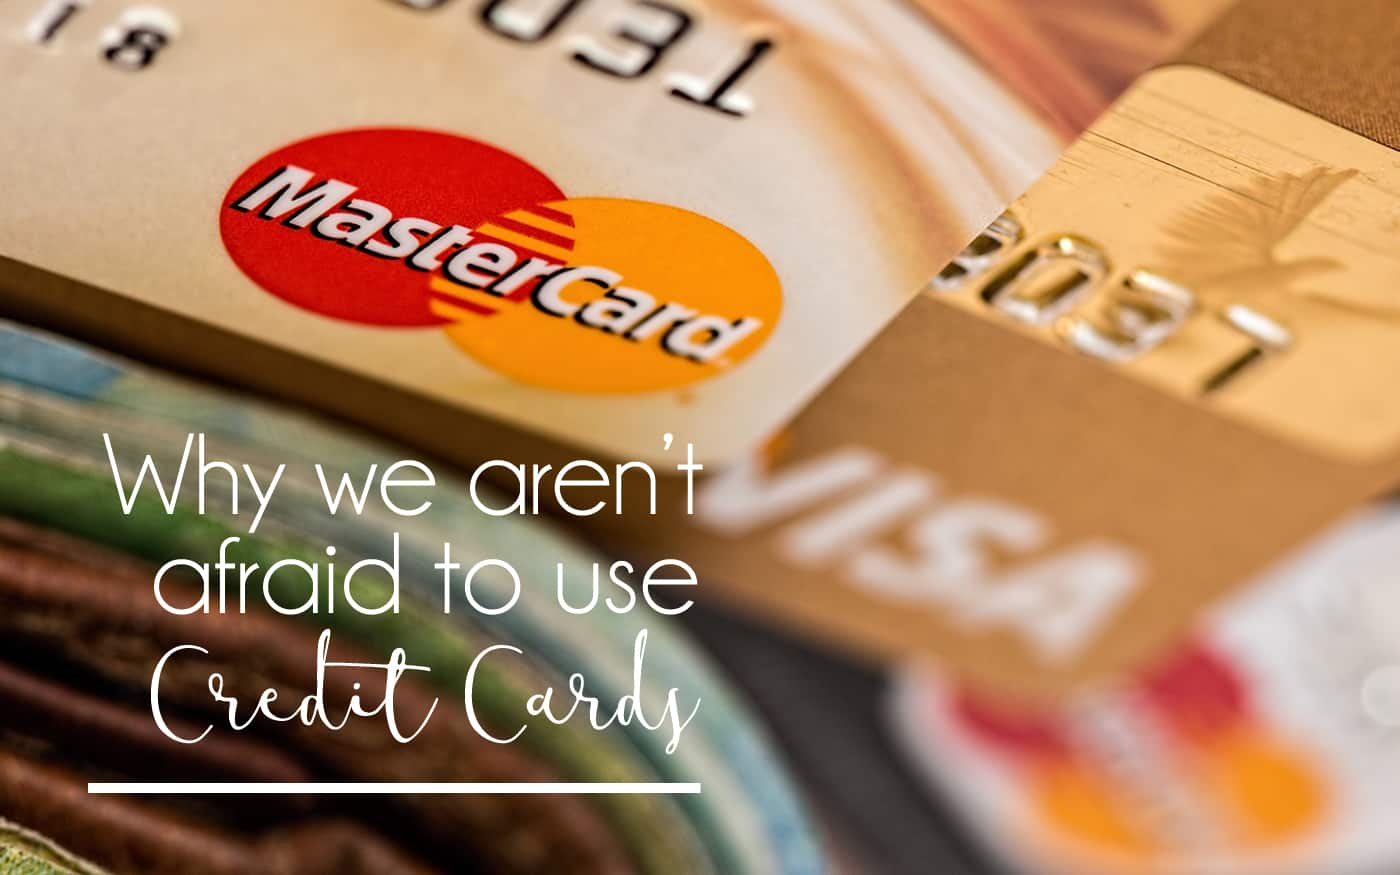 Why We Aren't Afraid to Use Credit Cards